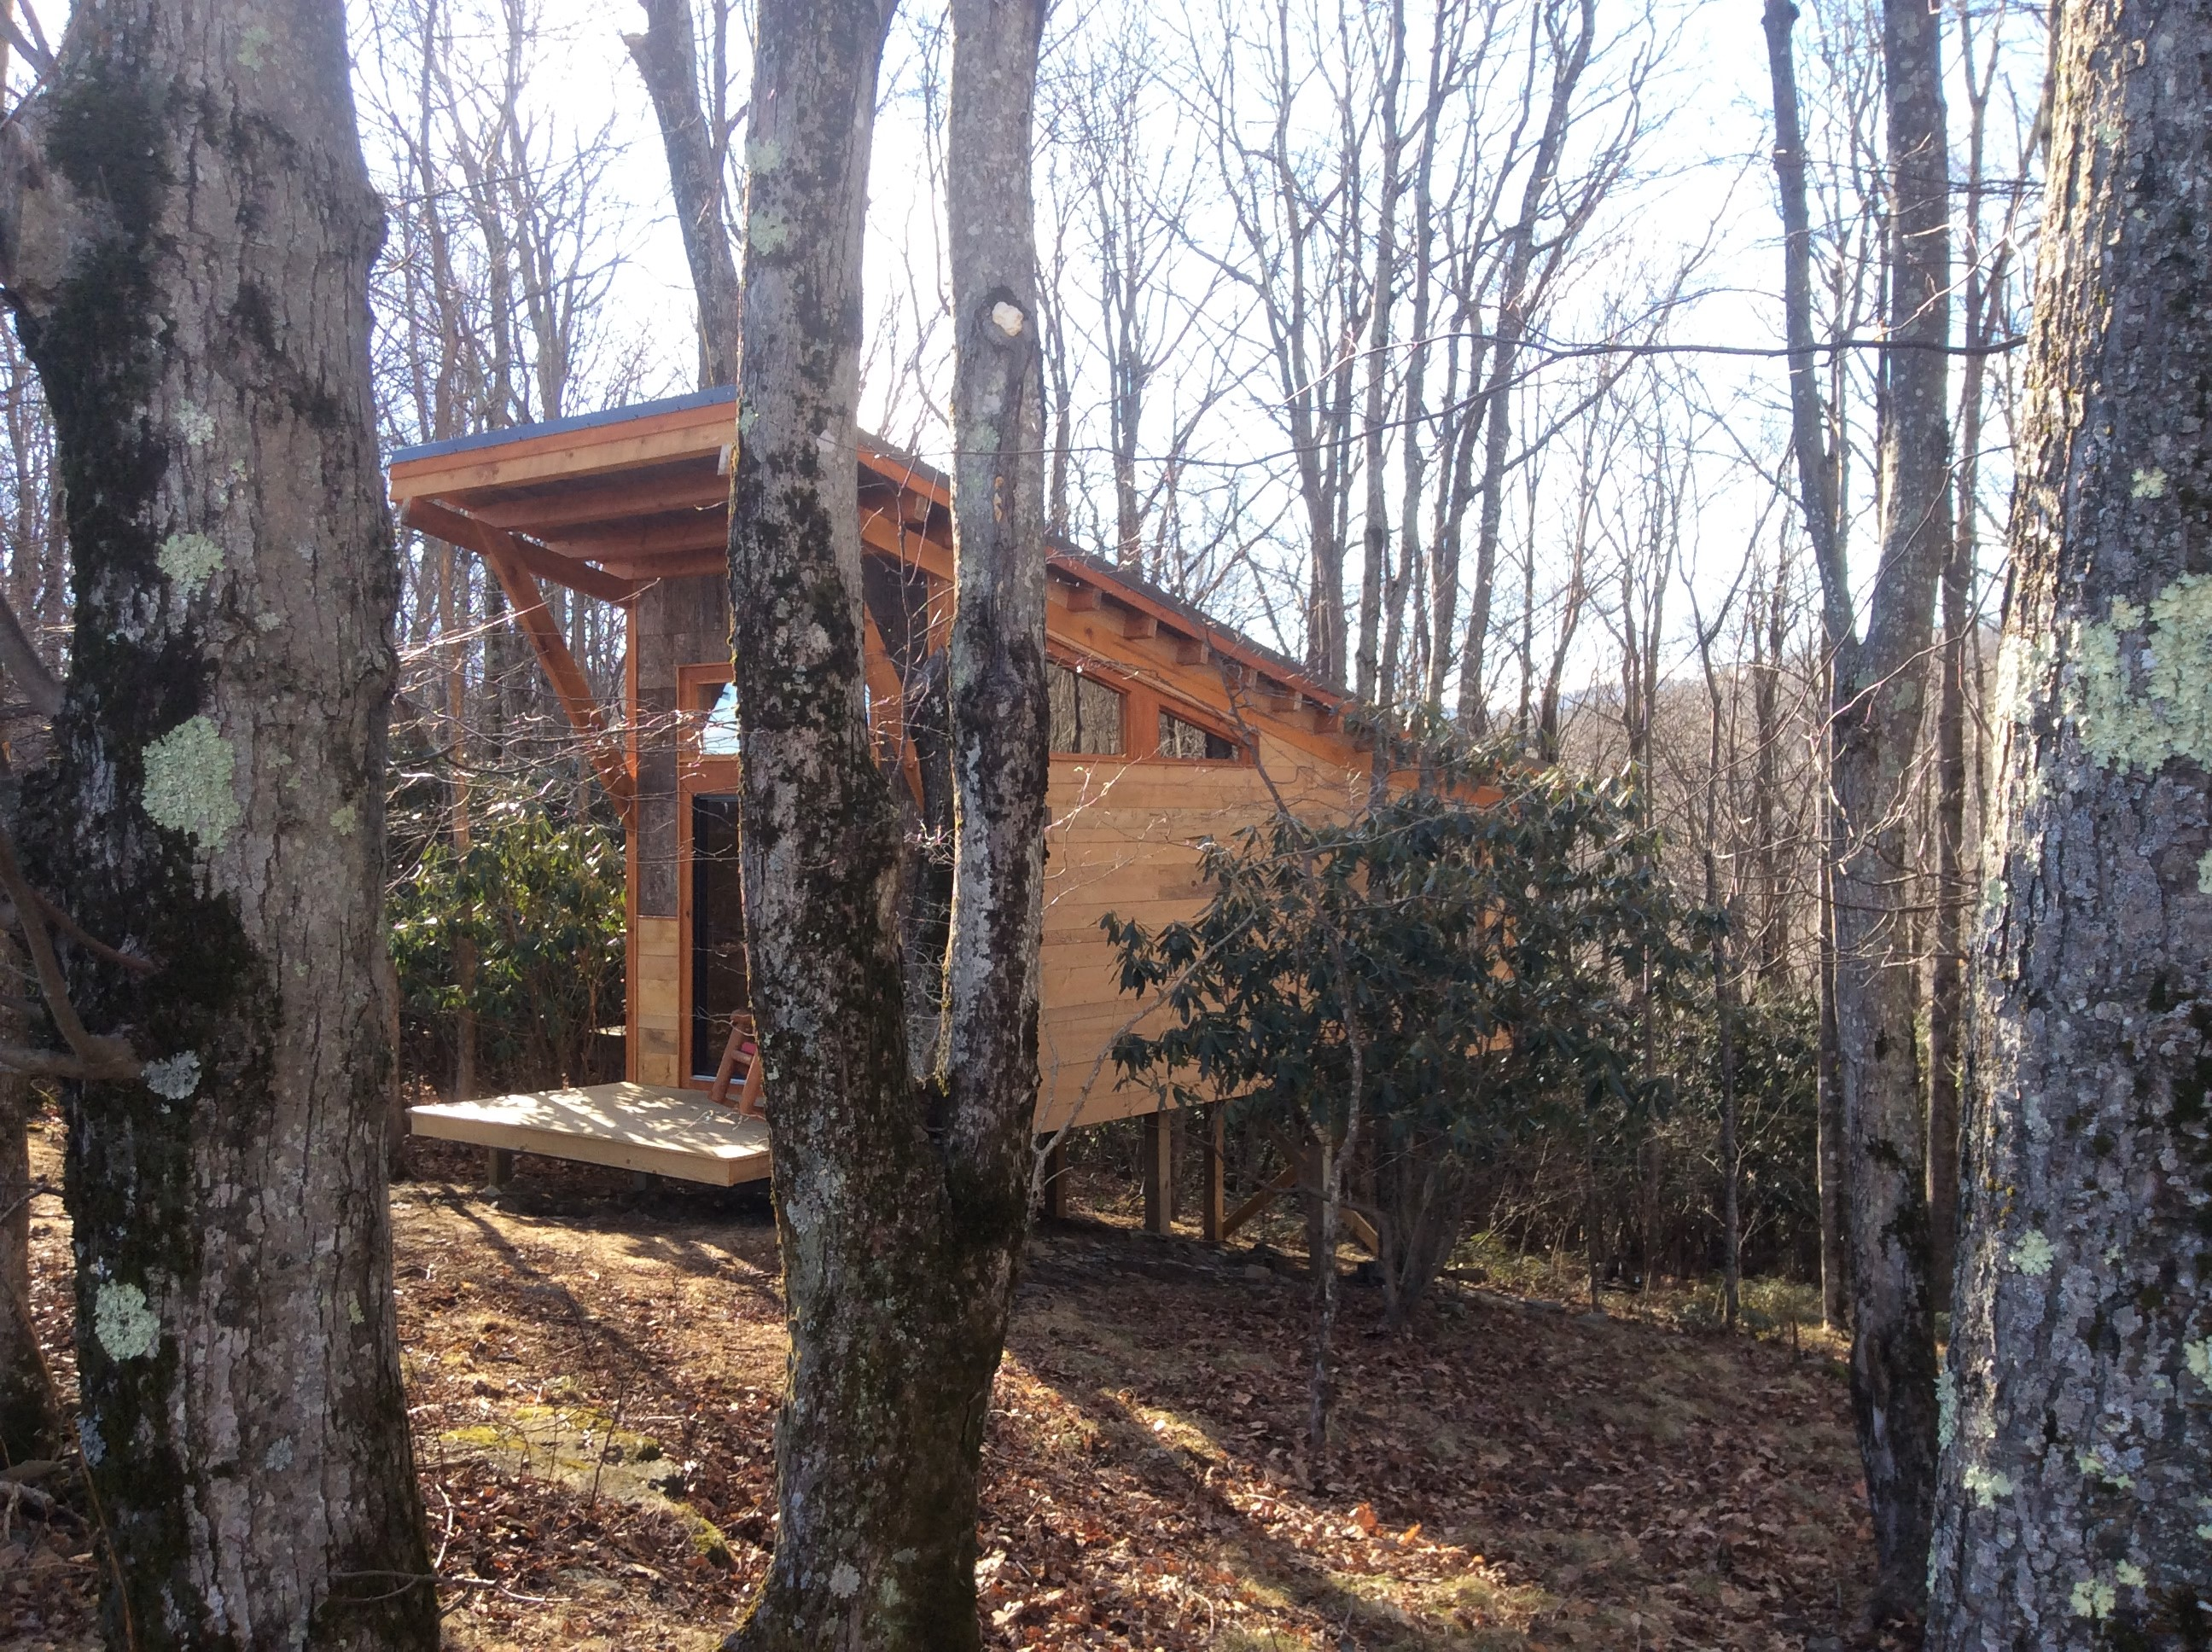 camping rentals gallery resort nc carolina a search boone mountains for leatherwood cabin north premier mountain cabins